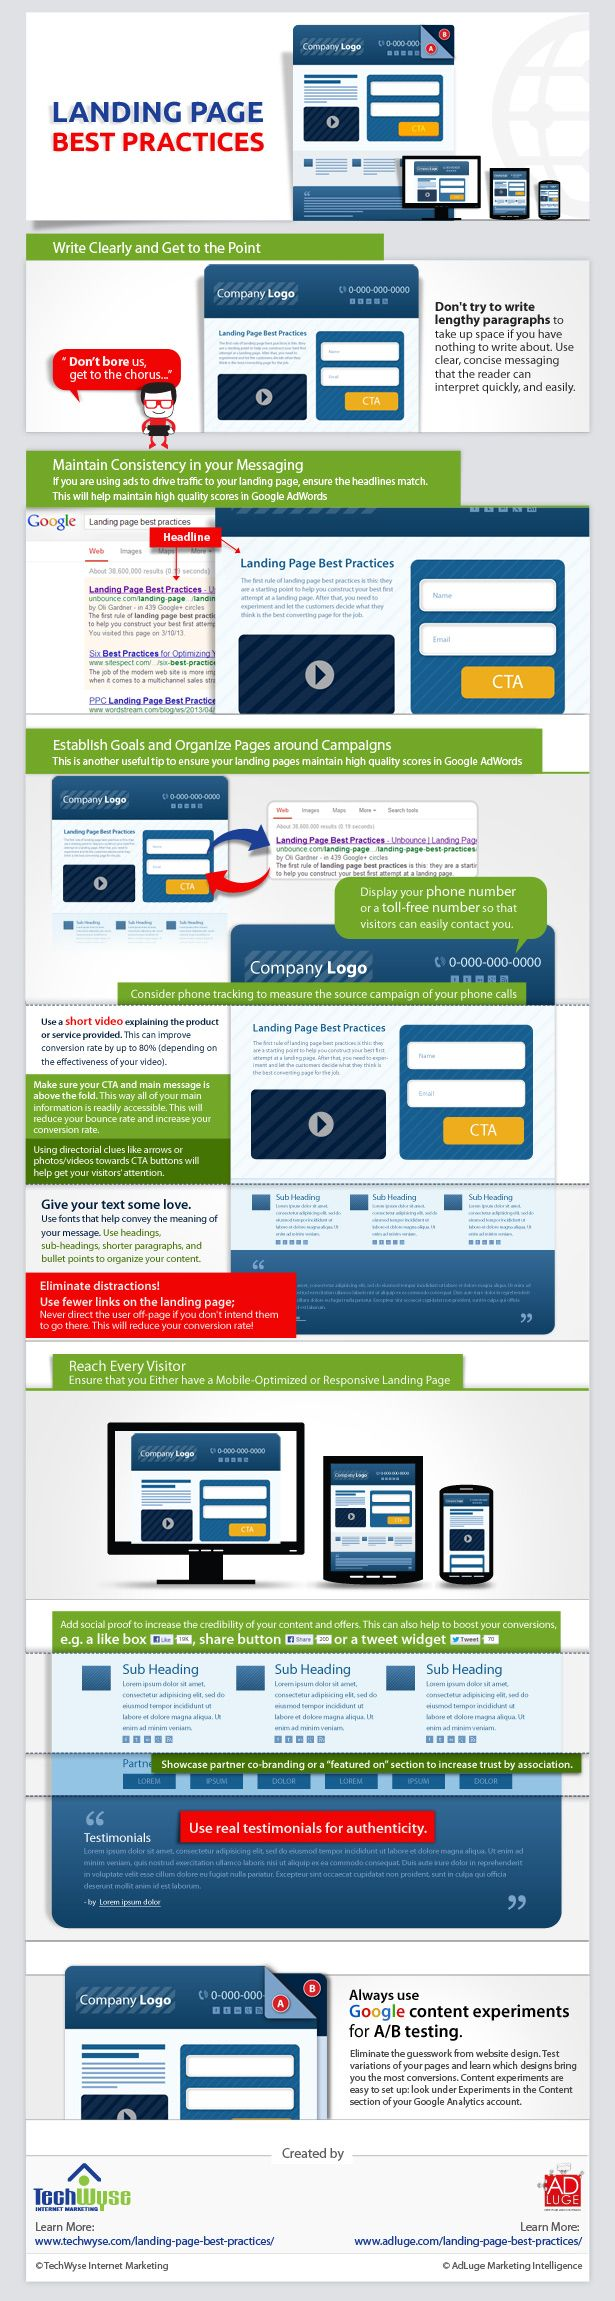 Landing Page Best Practices: How to Design the Perfect Landing Page #infographic